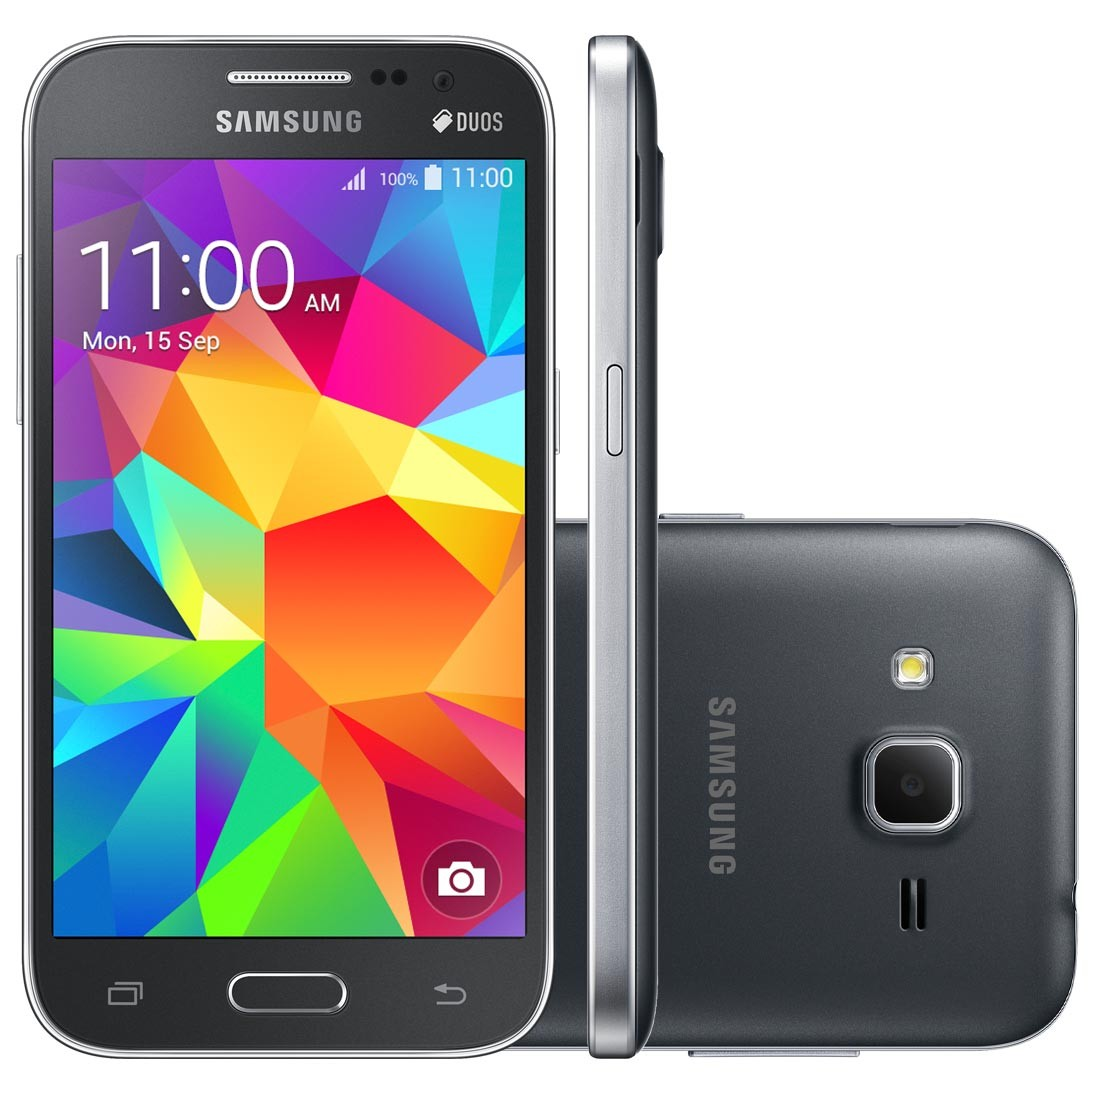 Smartphone Samsung Galaxy Win 2 Duos TV SM-G360BT, Android 4.4, Tela 4.5, 8GB, Câm 5MP, 4G, Cinza - Samsung